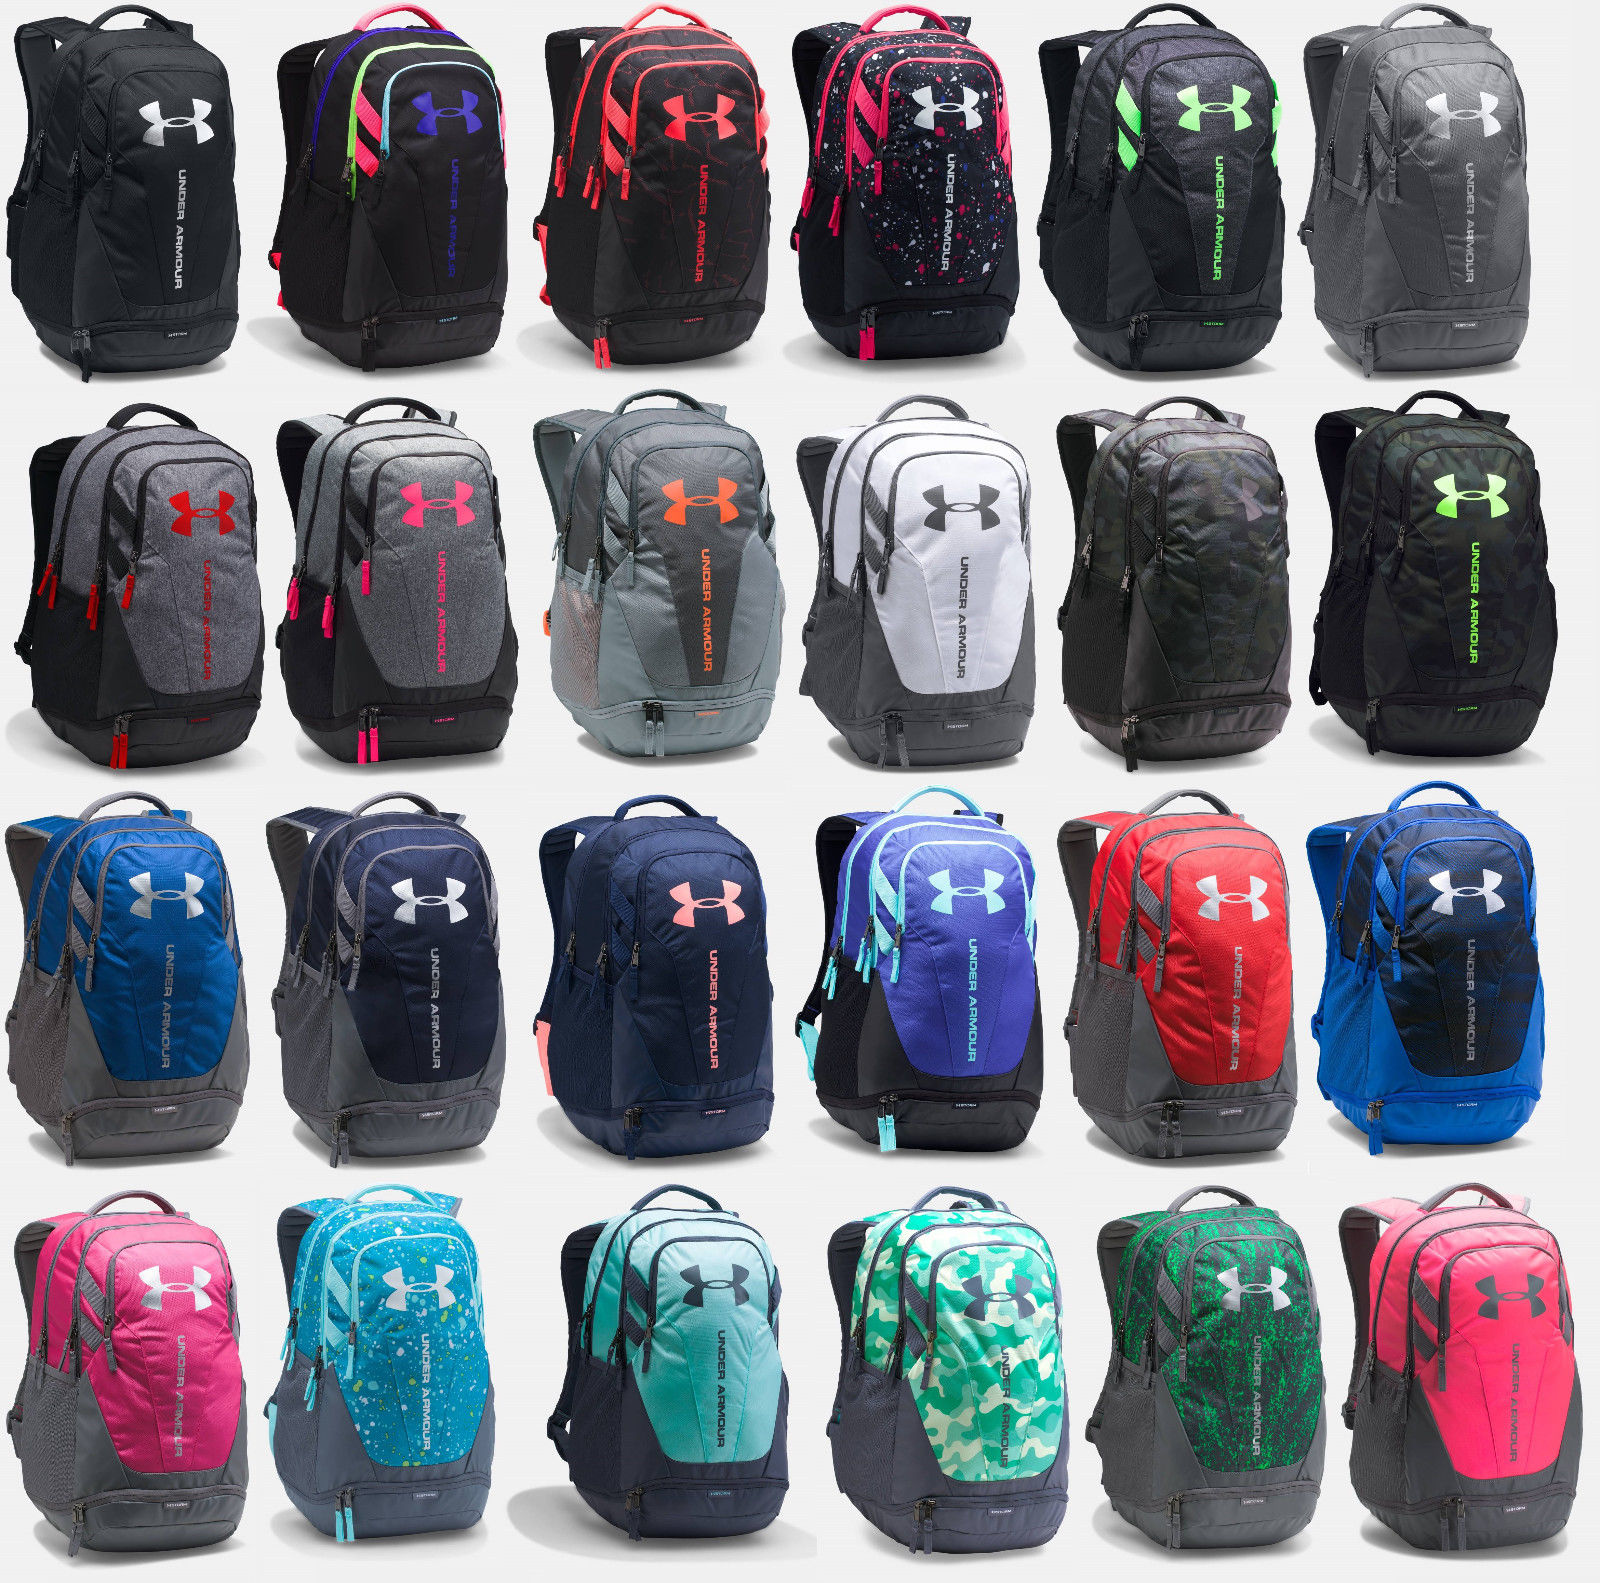 Under Armour Ua Storm Hustle 3.0 Backpack Back Pack Book Bag - Many Colors a68dc49576842